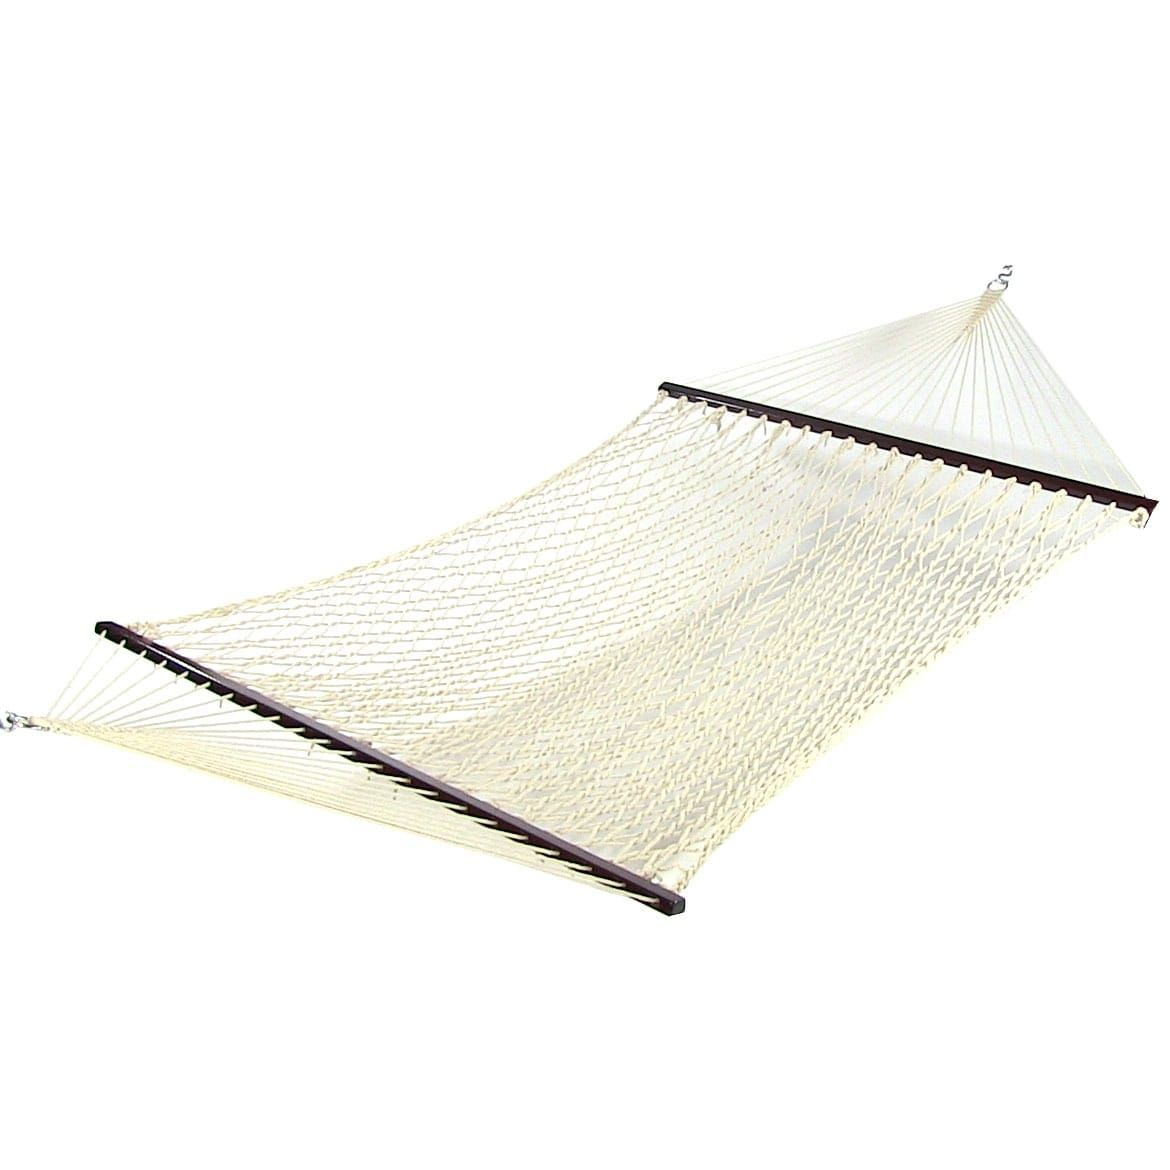 Sunnydaze Cotton Double Wide Rope Hammock With Spreader Bar Stand Combo